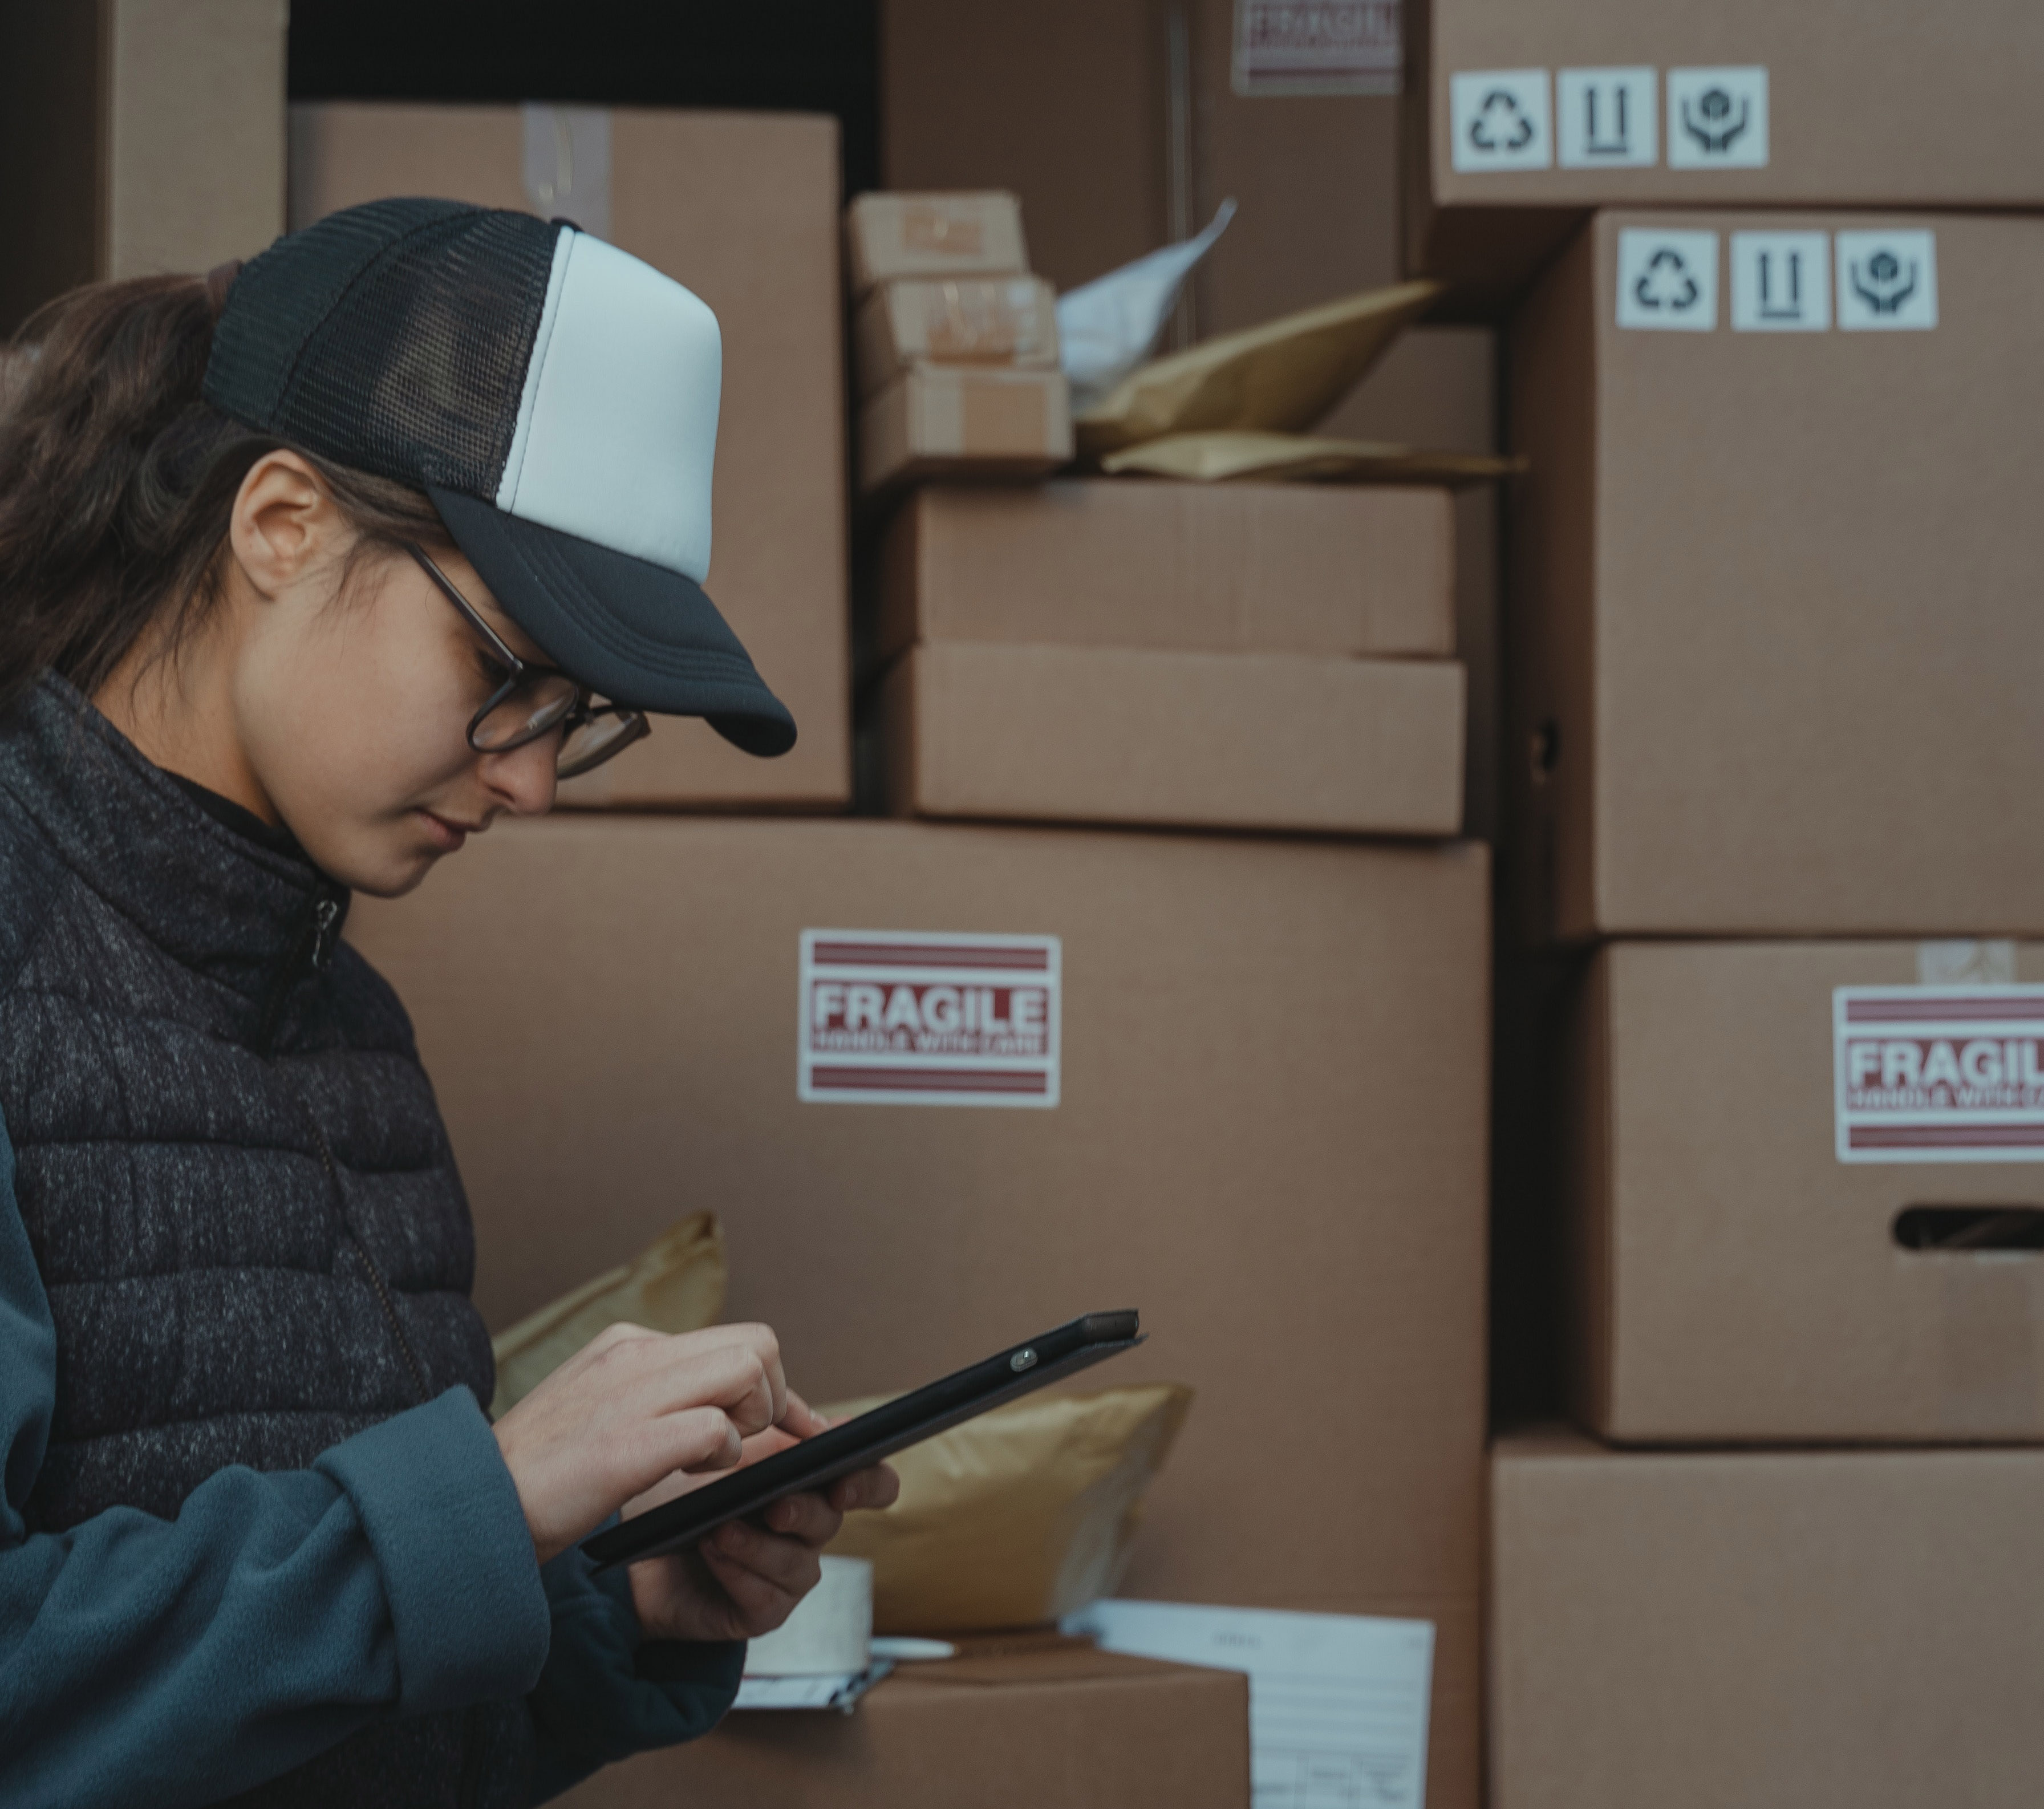 Woman checking device with delivery boxes behind her.